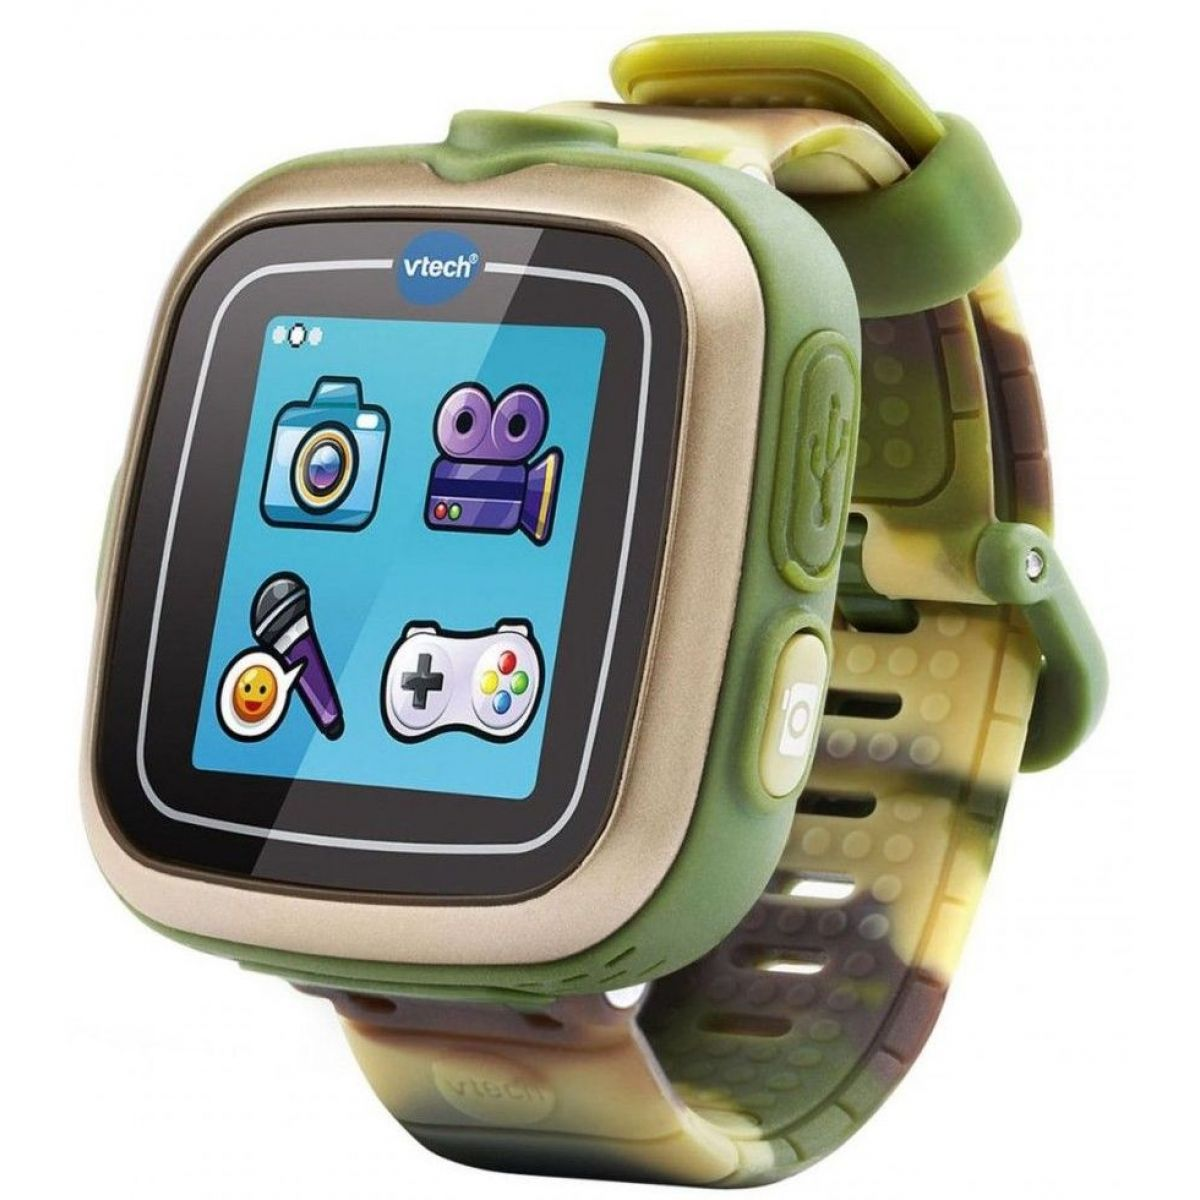 Vtech Kidizoom Smart Watch DX7 maskovací